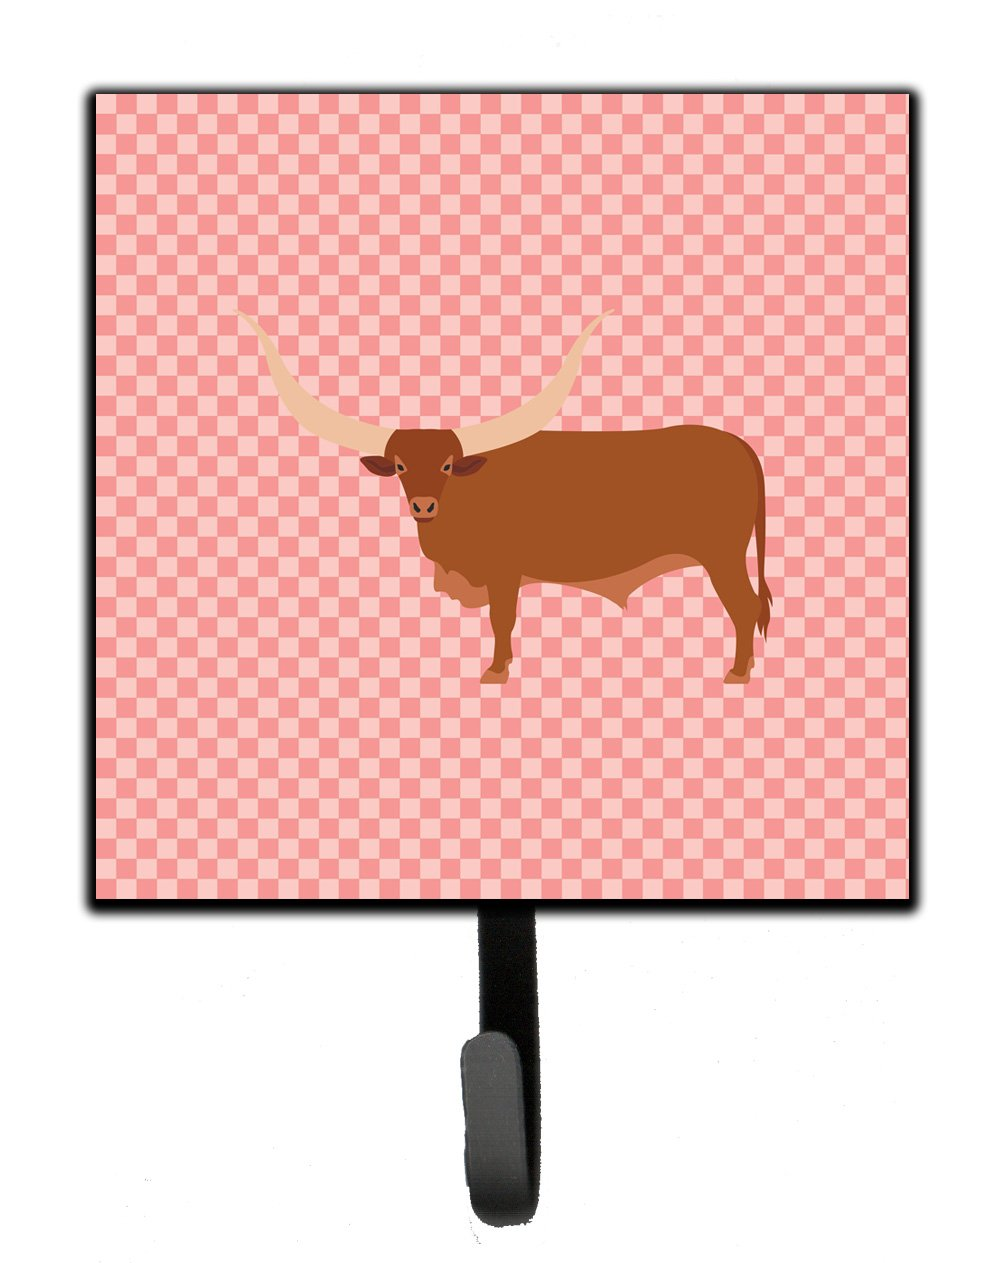 Buy this Ankole-Watusu Cow Pink Check Leash or Key Holder